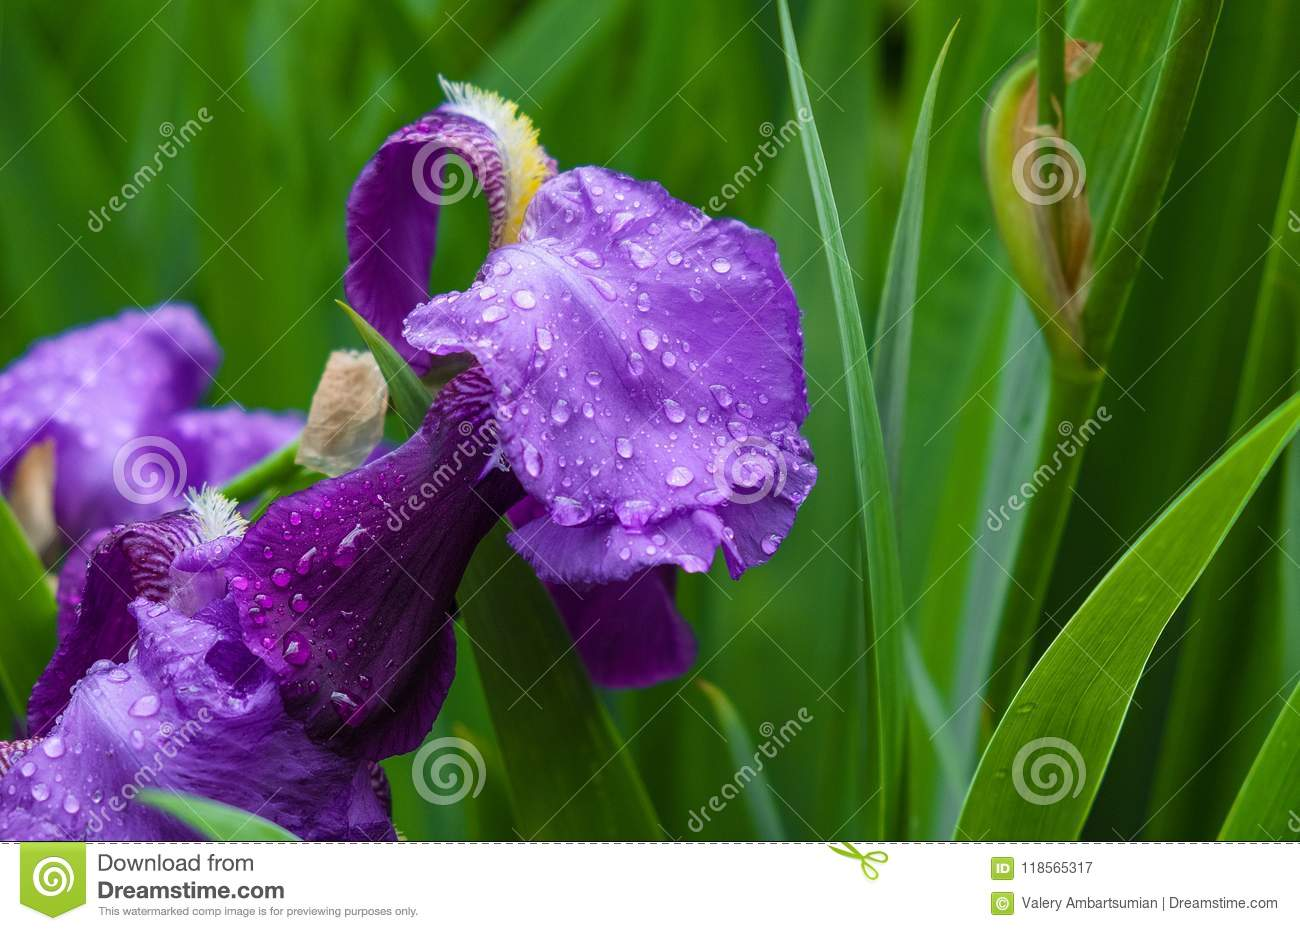 Drops Of Water On Petals Of An Iris Flower Stock Image Image Of